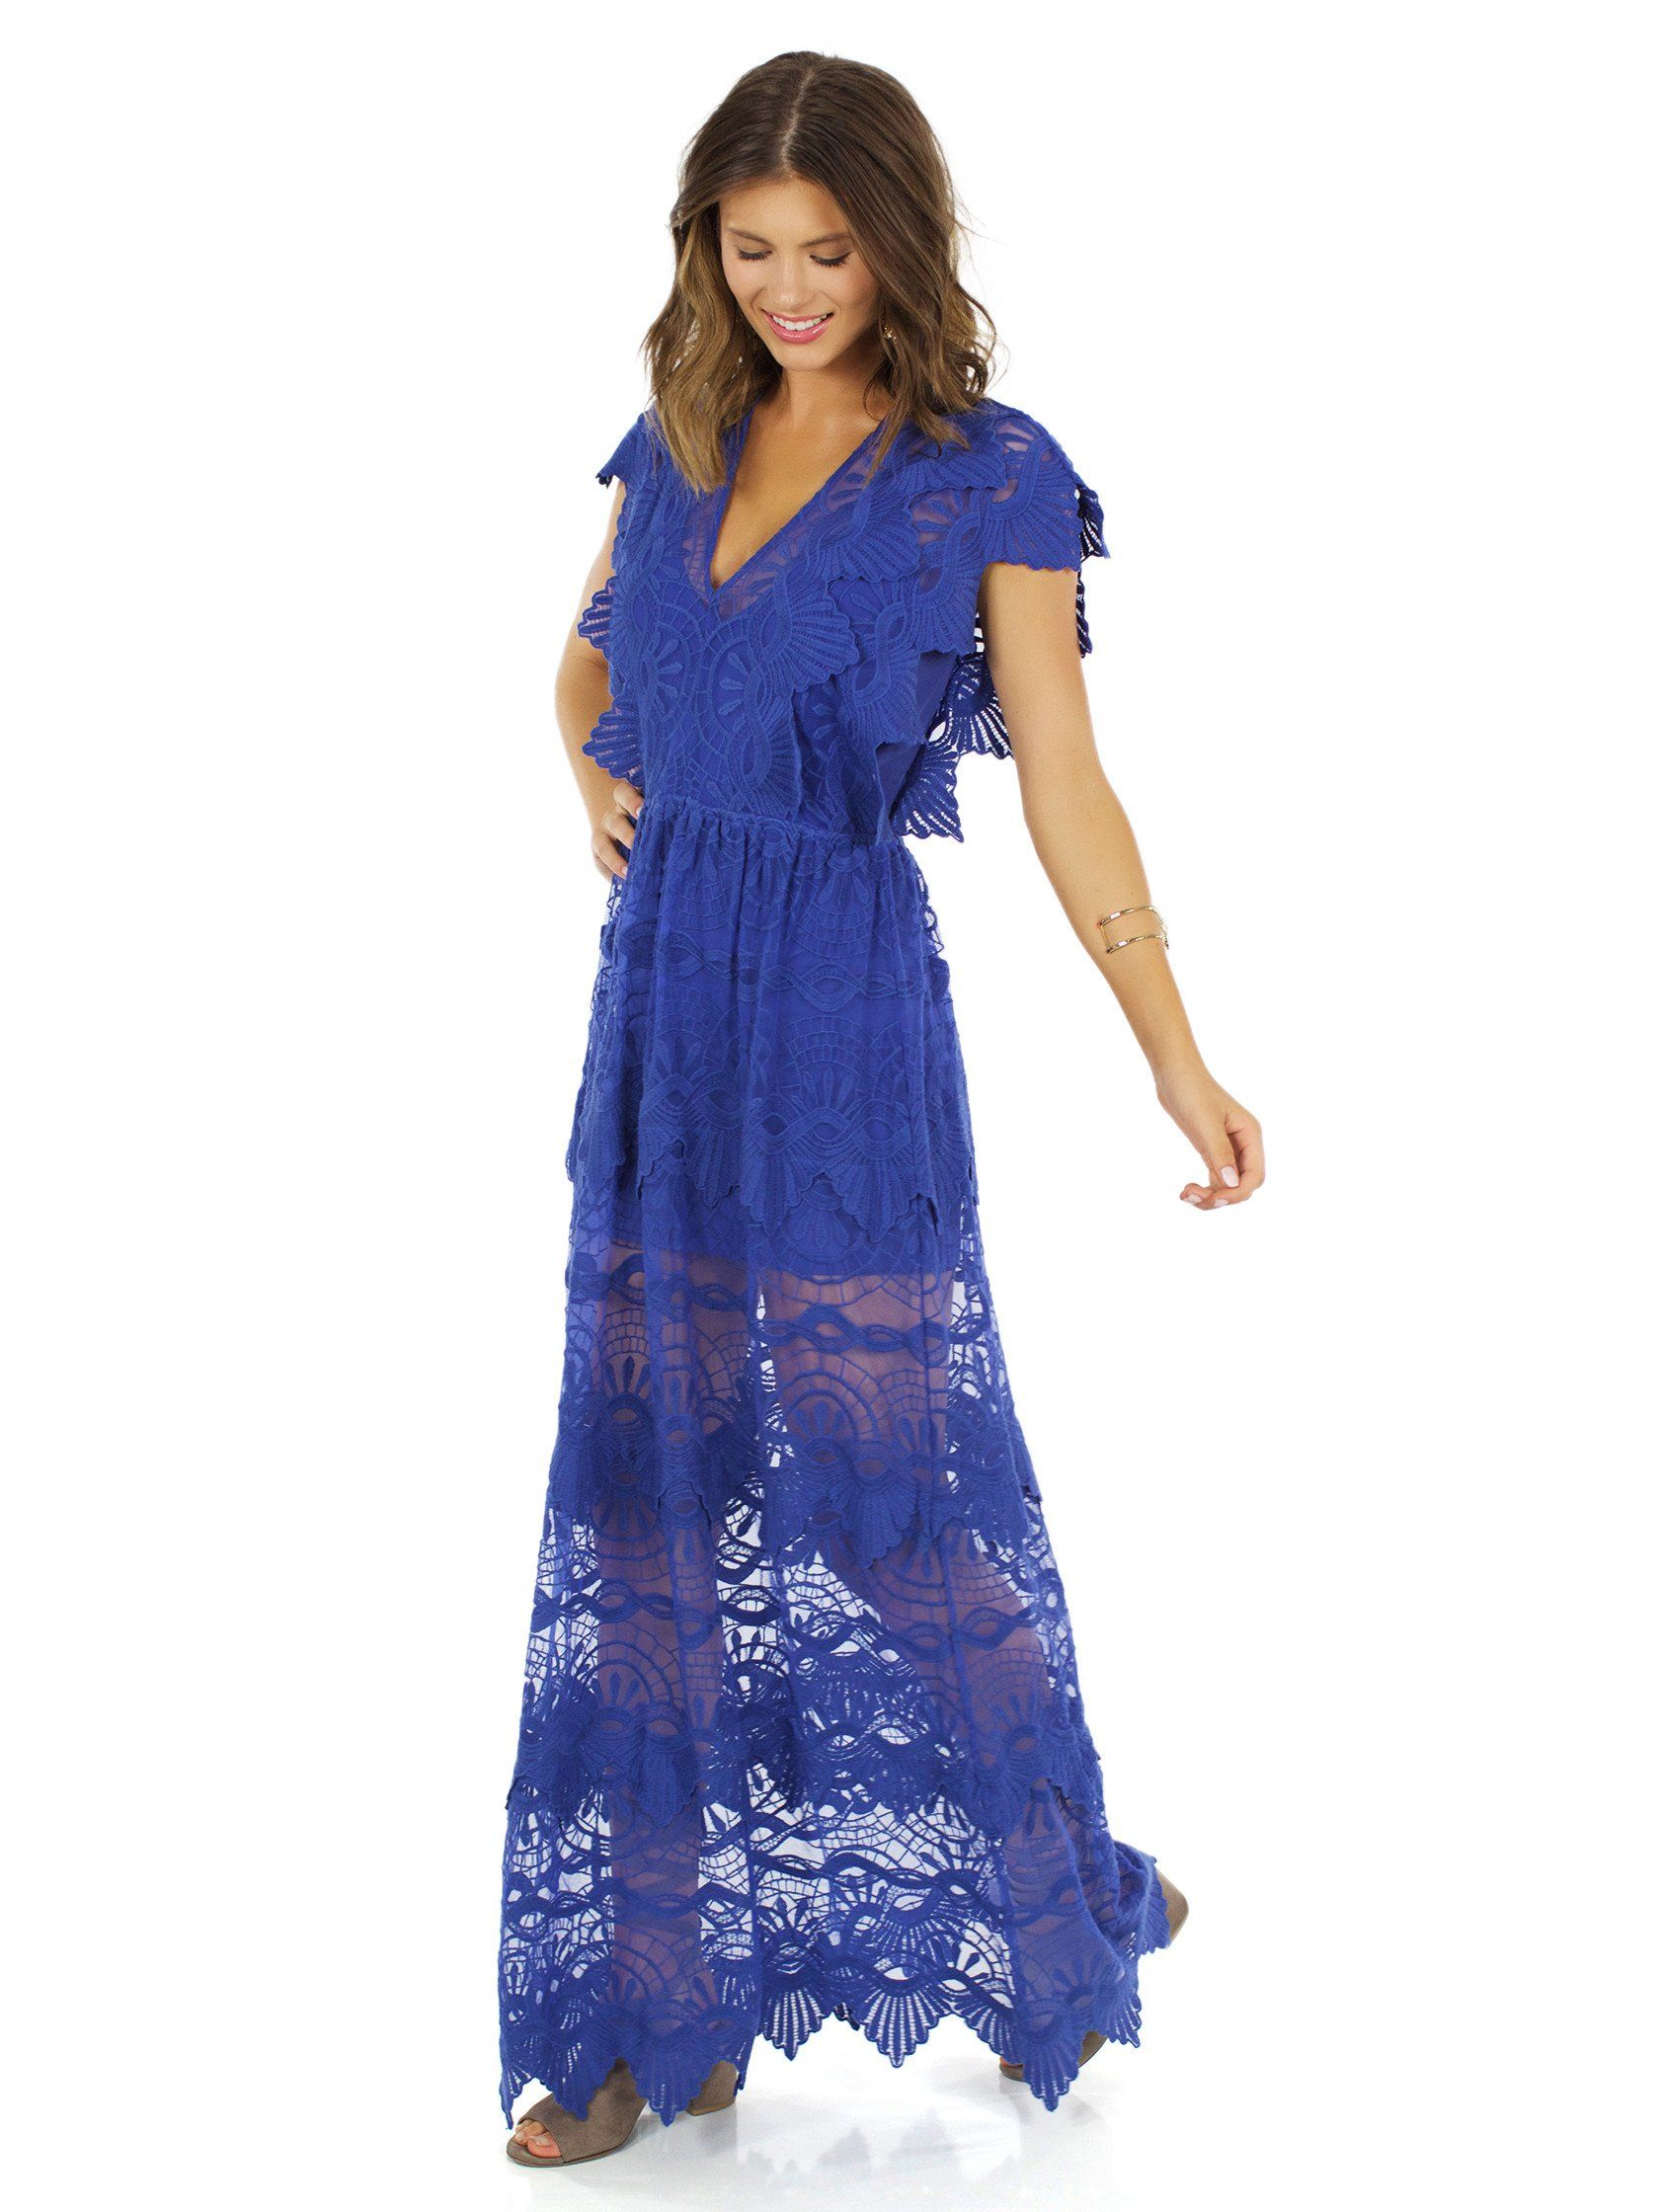 467140871a2 NIGHTCAP CLOTHING - Steal the show in this incredible Nightcap number.  Perfect for weddings or a tropical getaway. Comes with an Indigo Nightcap  Clothing ...